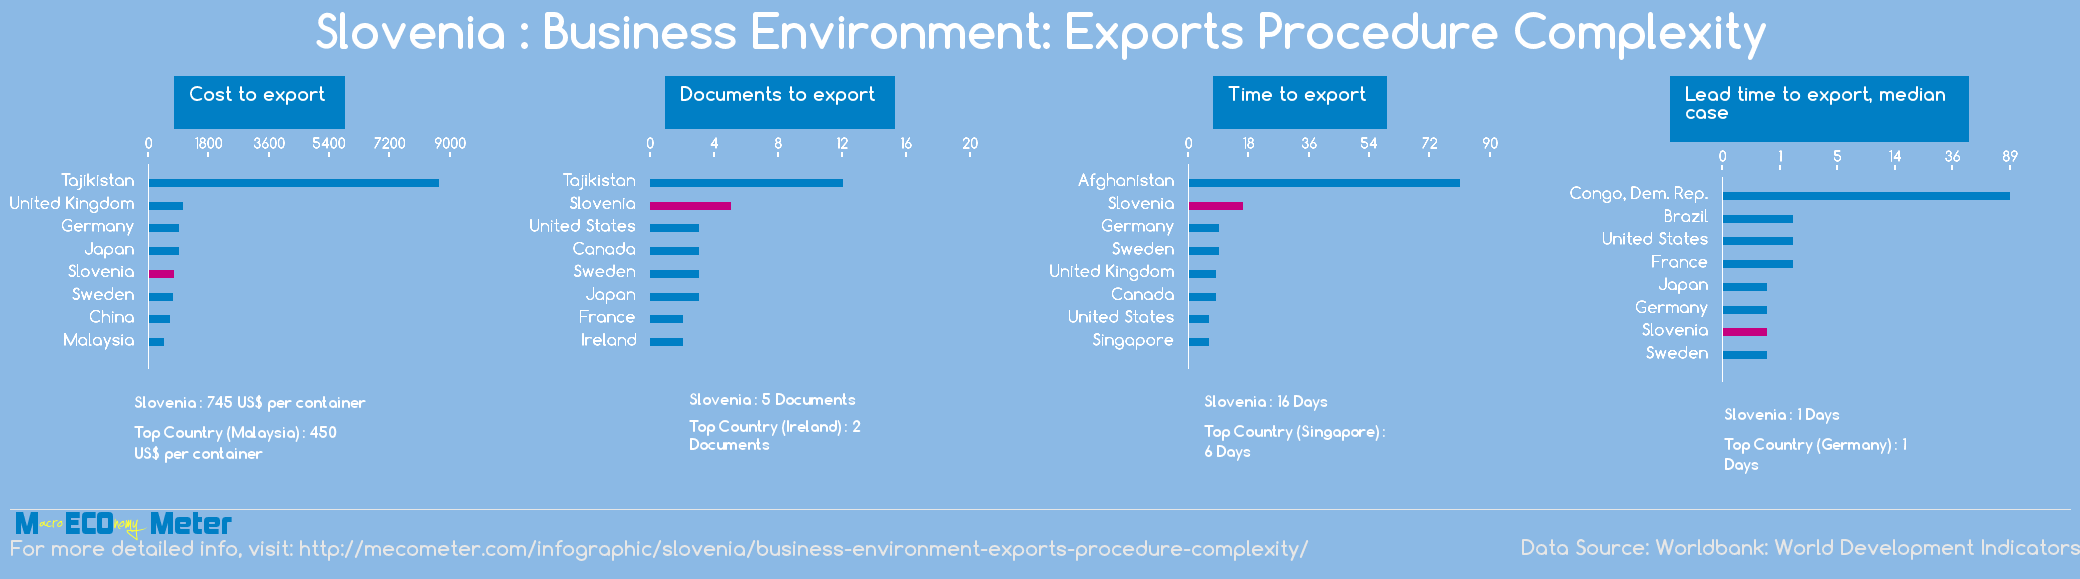 Slovenia : Business Environment: Exports Procedure Complexity